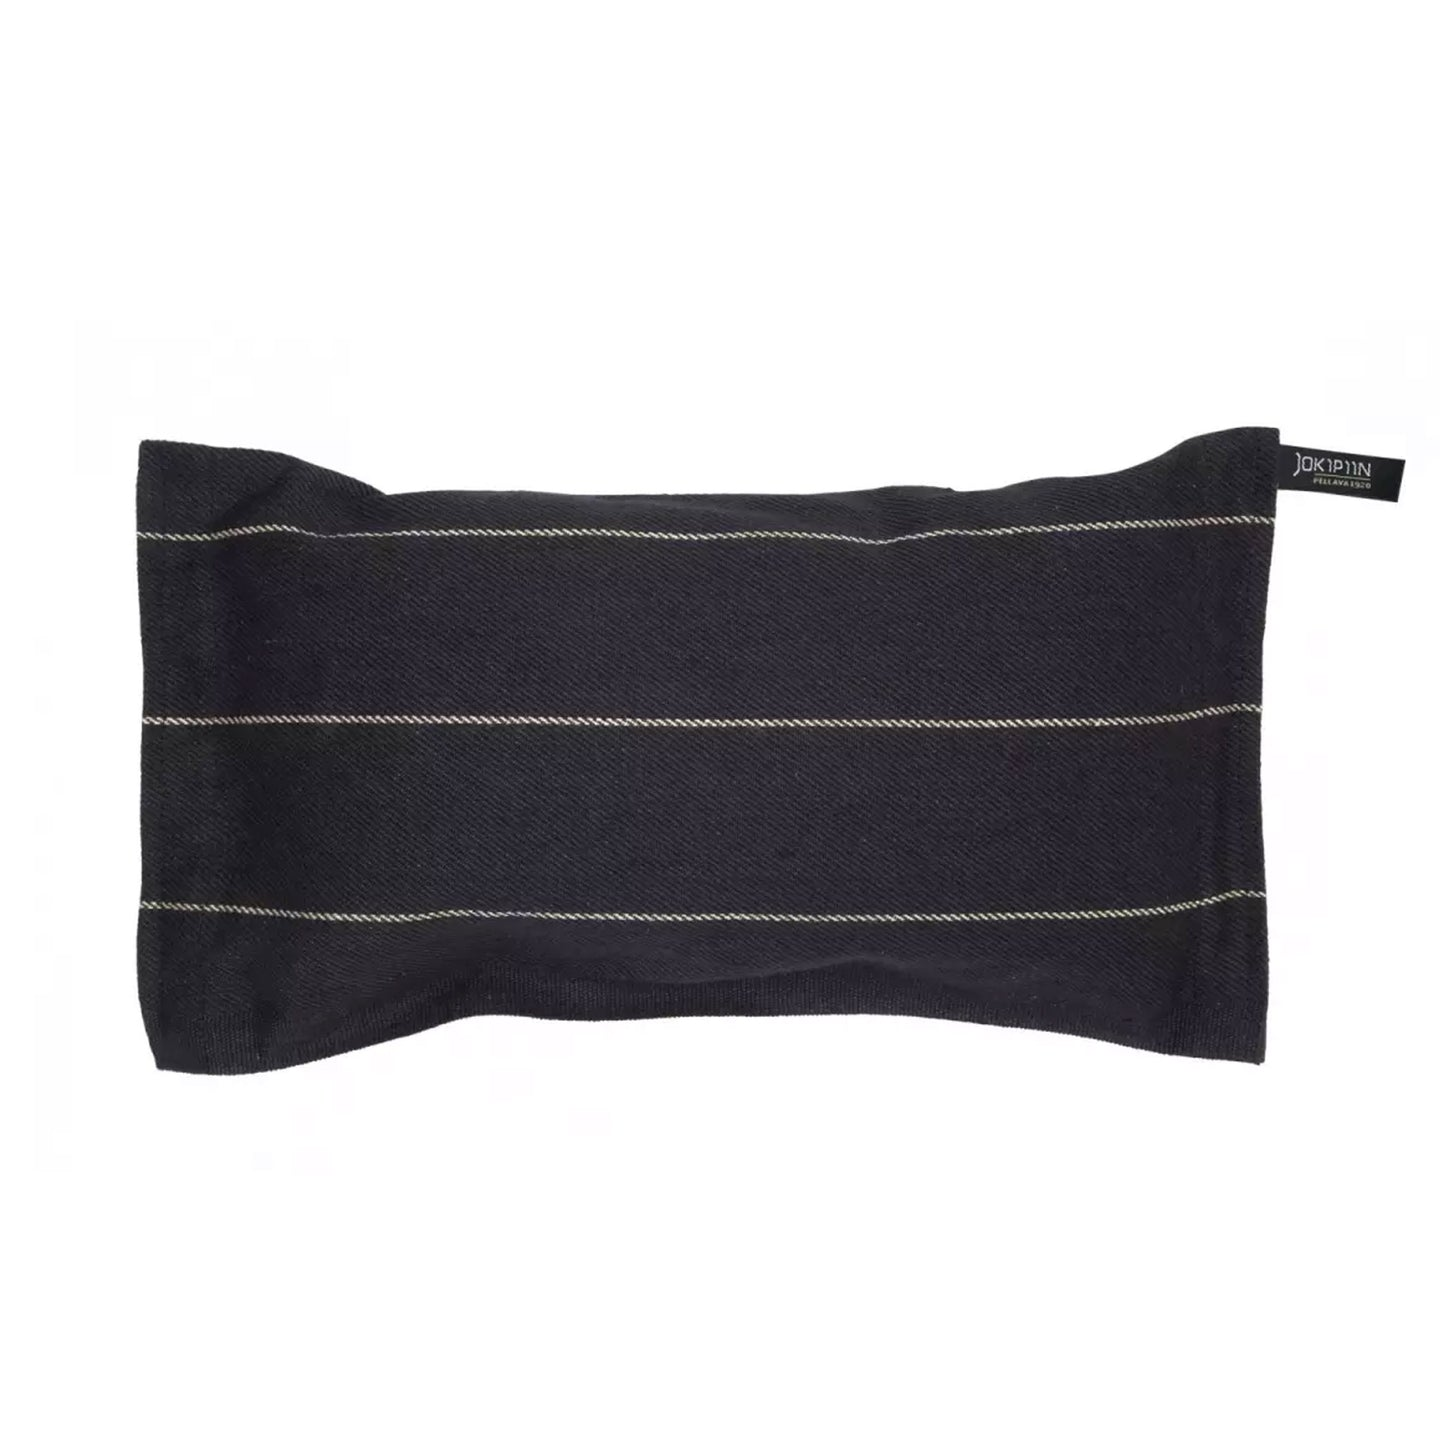 Liituraita Sauna Pillow black by Jokipiin Pellava  Sauna Pillow Finnmark Sauna